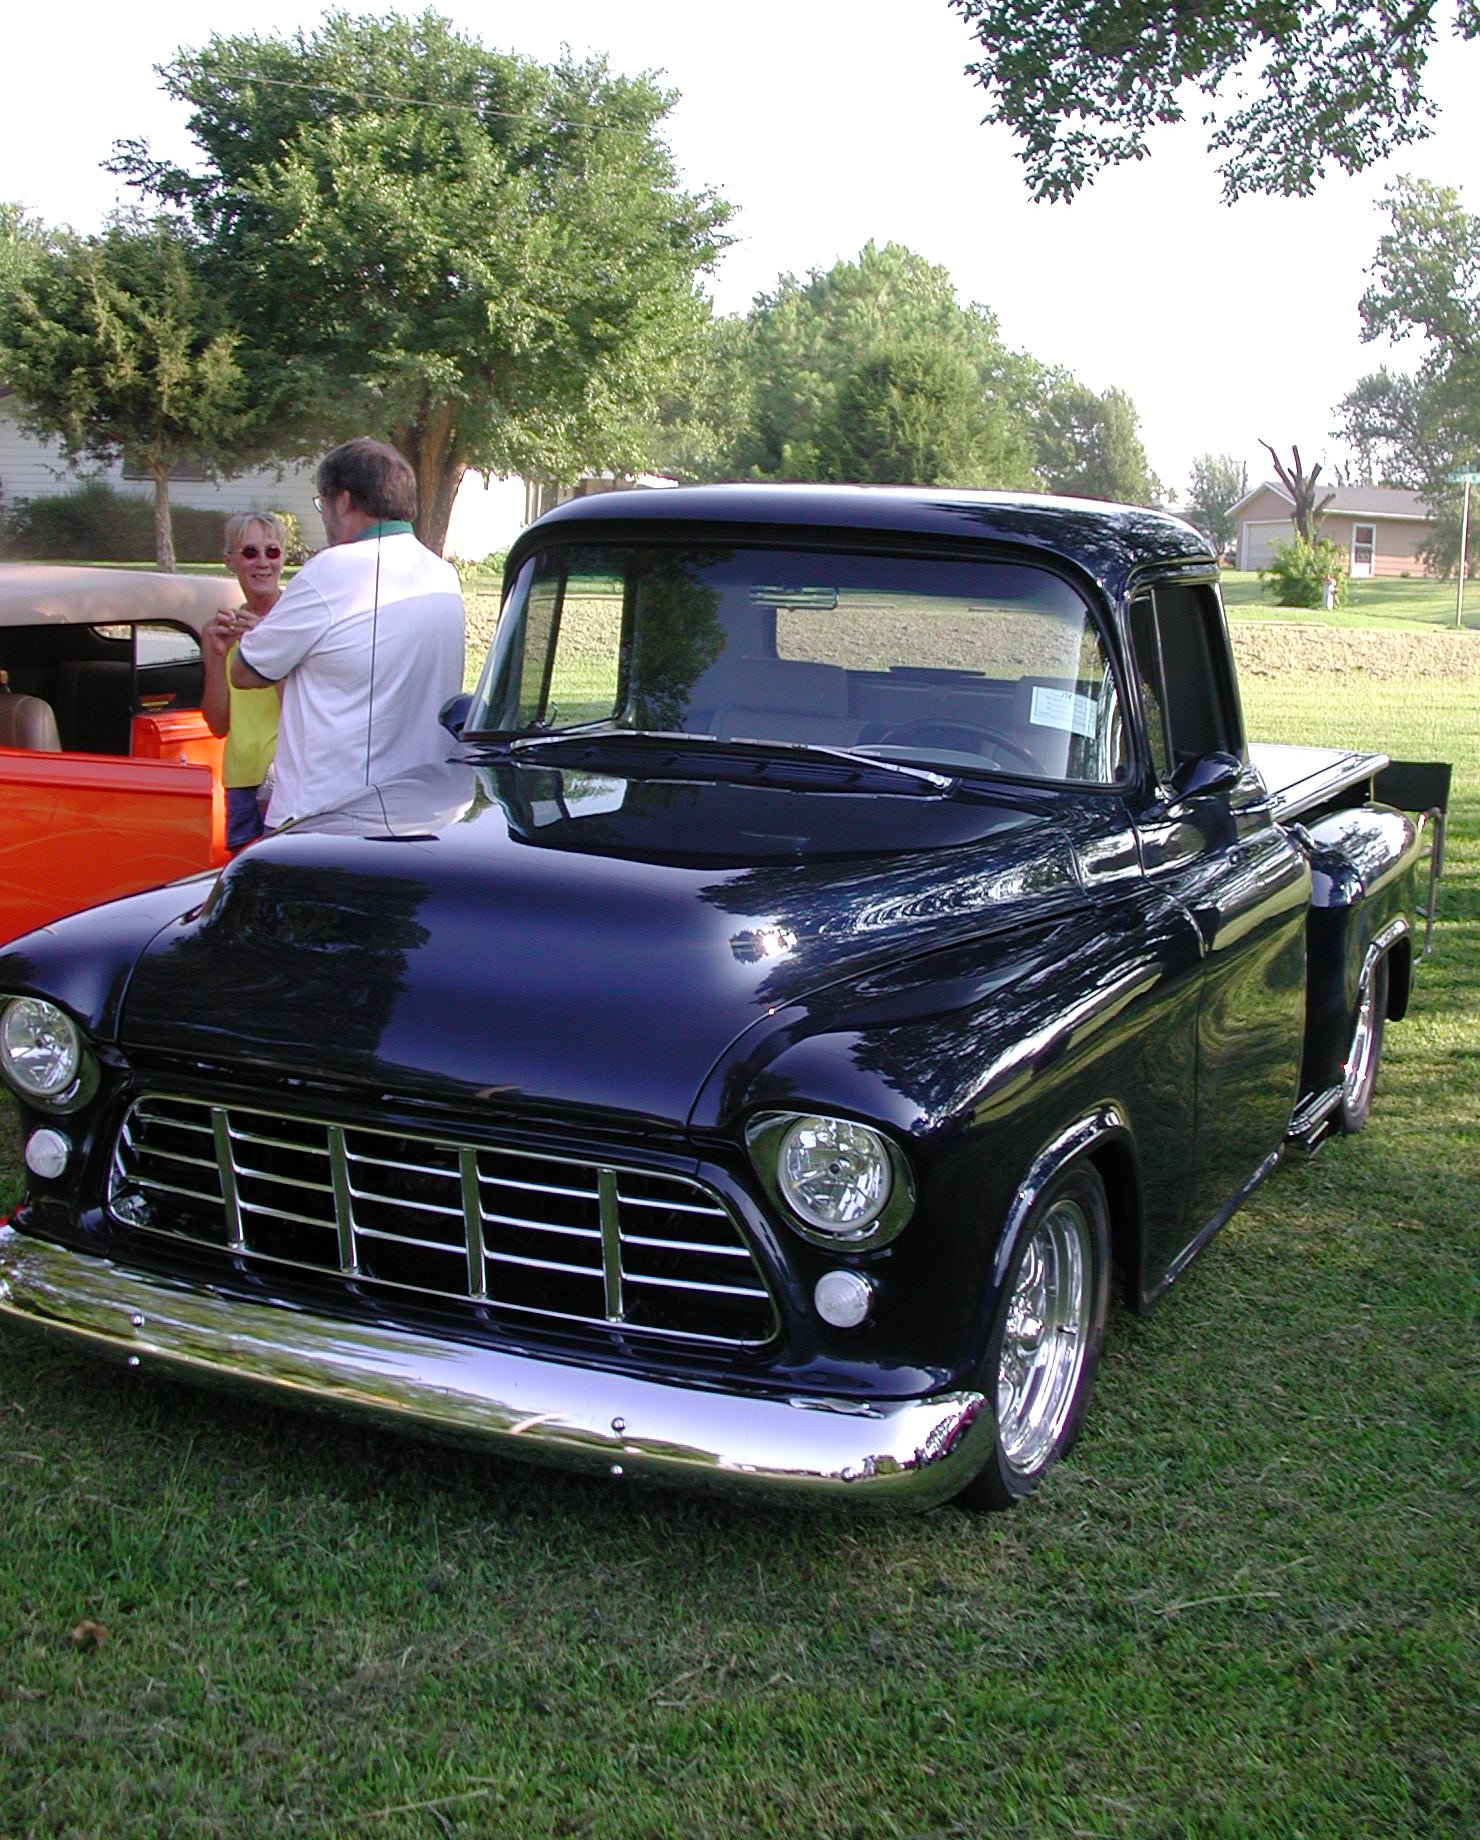 Car 3: 56 Chevy Pick-up